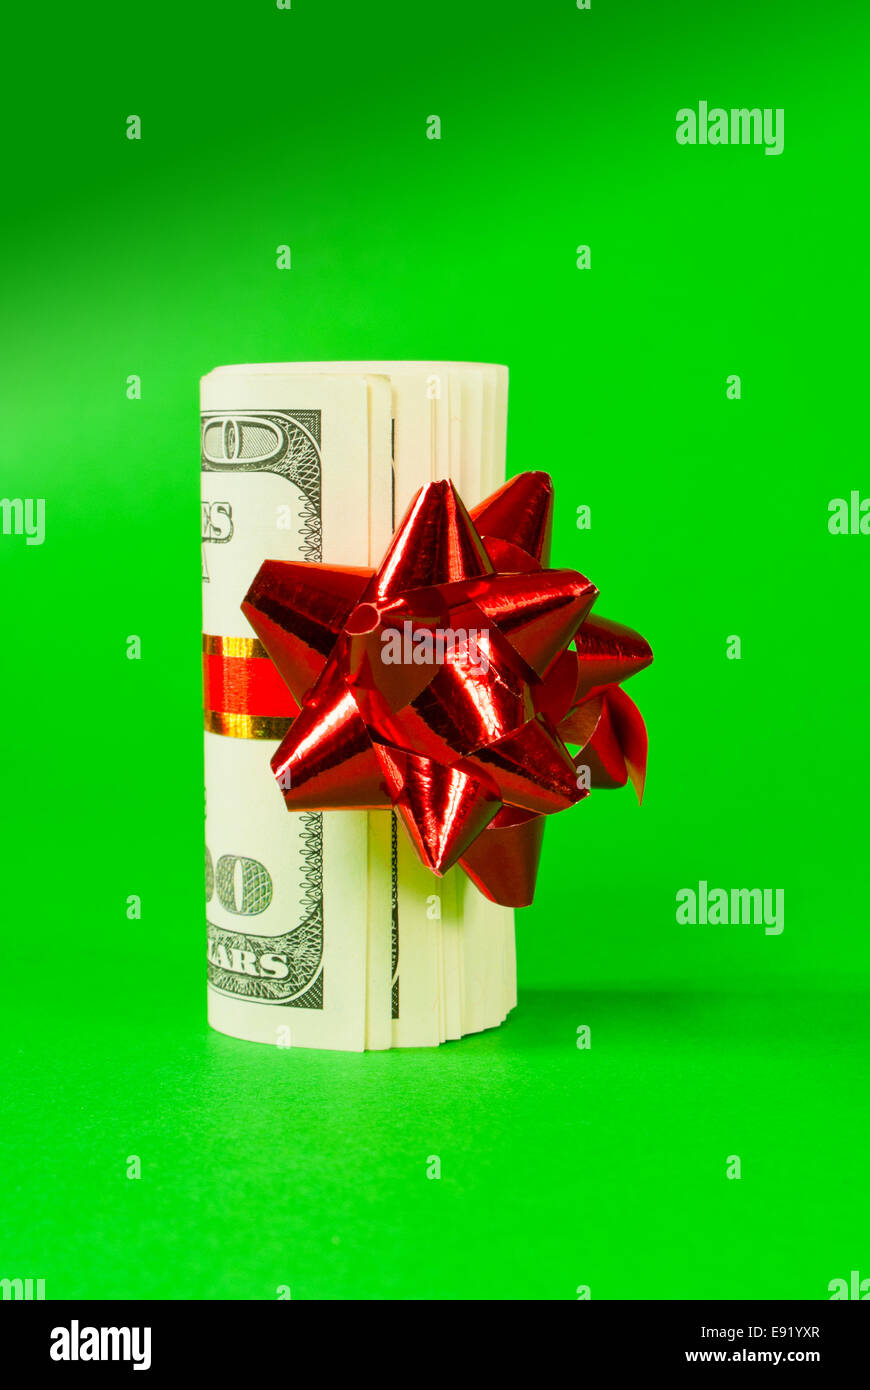 A wad of US one hundred dollar bills - Stock Image